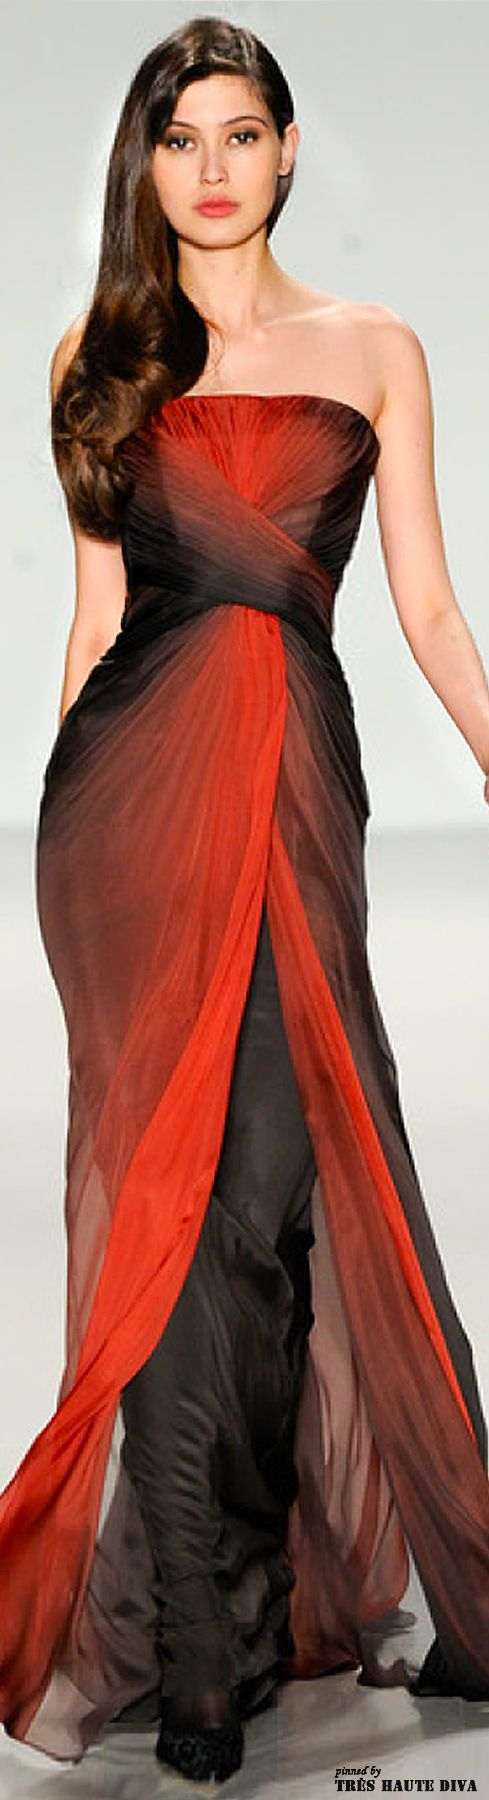 NYFW Pamella Roland Fall/Winter 2014 RTW:  waistlength right-swept wavy brown hair, orange lips, orange/black gradient tulle sleeveless floorlength wrap w/ frontal opening & black tapered underskirt, black heels